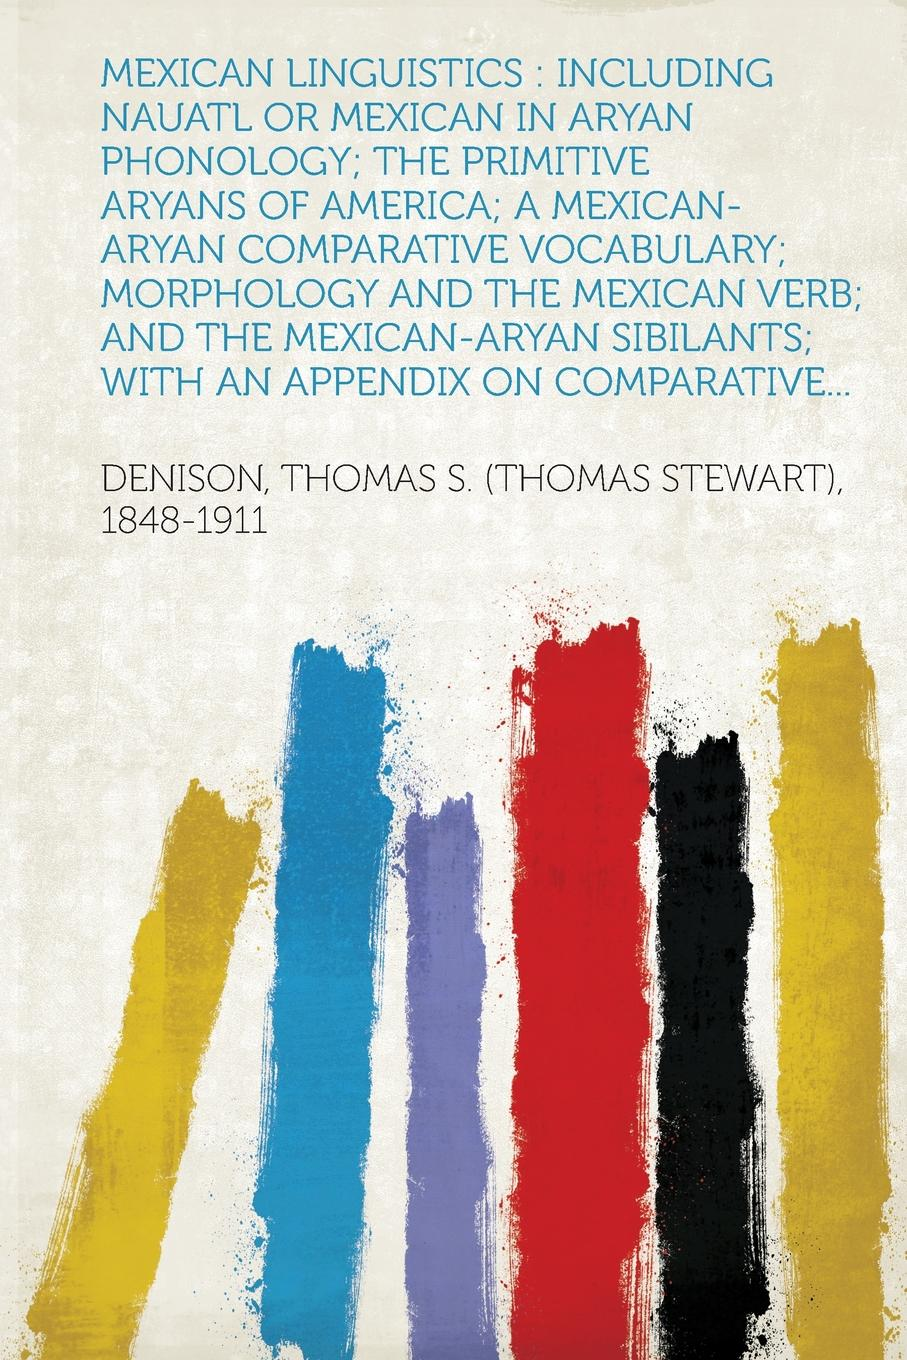 Denison Thomas S. (Thomas St 1848-1911 Mexican Linguistics. Including Nauatl or Mexican in Aryan Phonology; The Primitive Aryans of America; A Mexican-Aryan Comparative Vocabulary; Morphology and the Mexican Verb; and The Mexican-Aryan Sibilants; With an Appendix on Comparative... mexican made easy